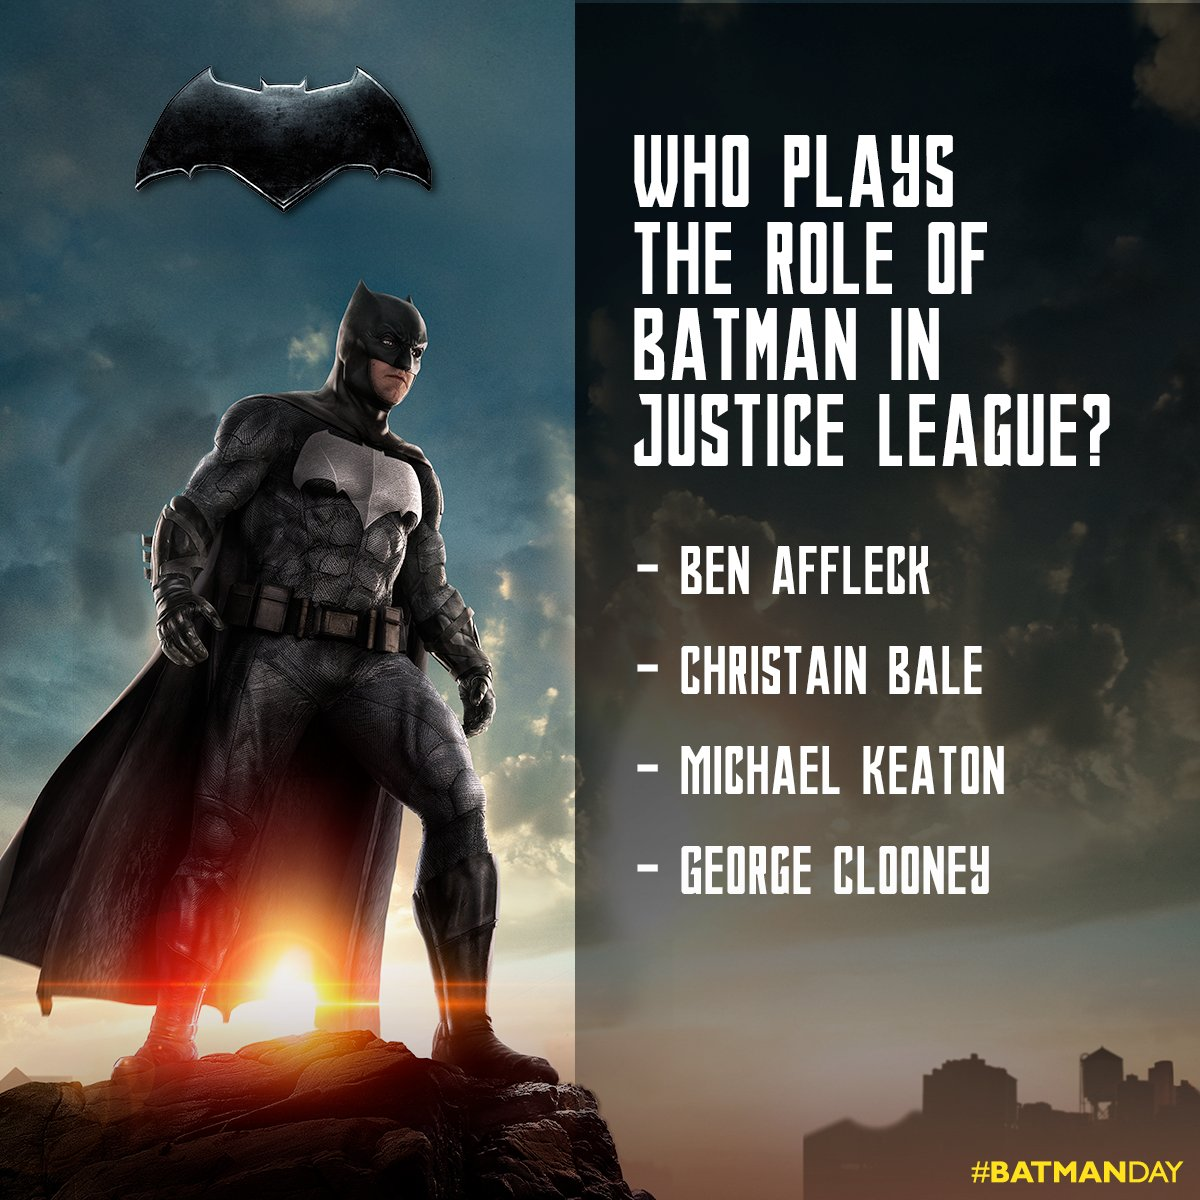 #ContestAlert #BatmanDay Answer this simple question & stand a cha...